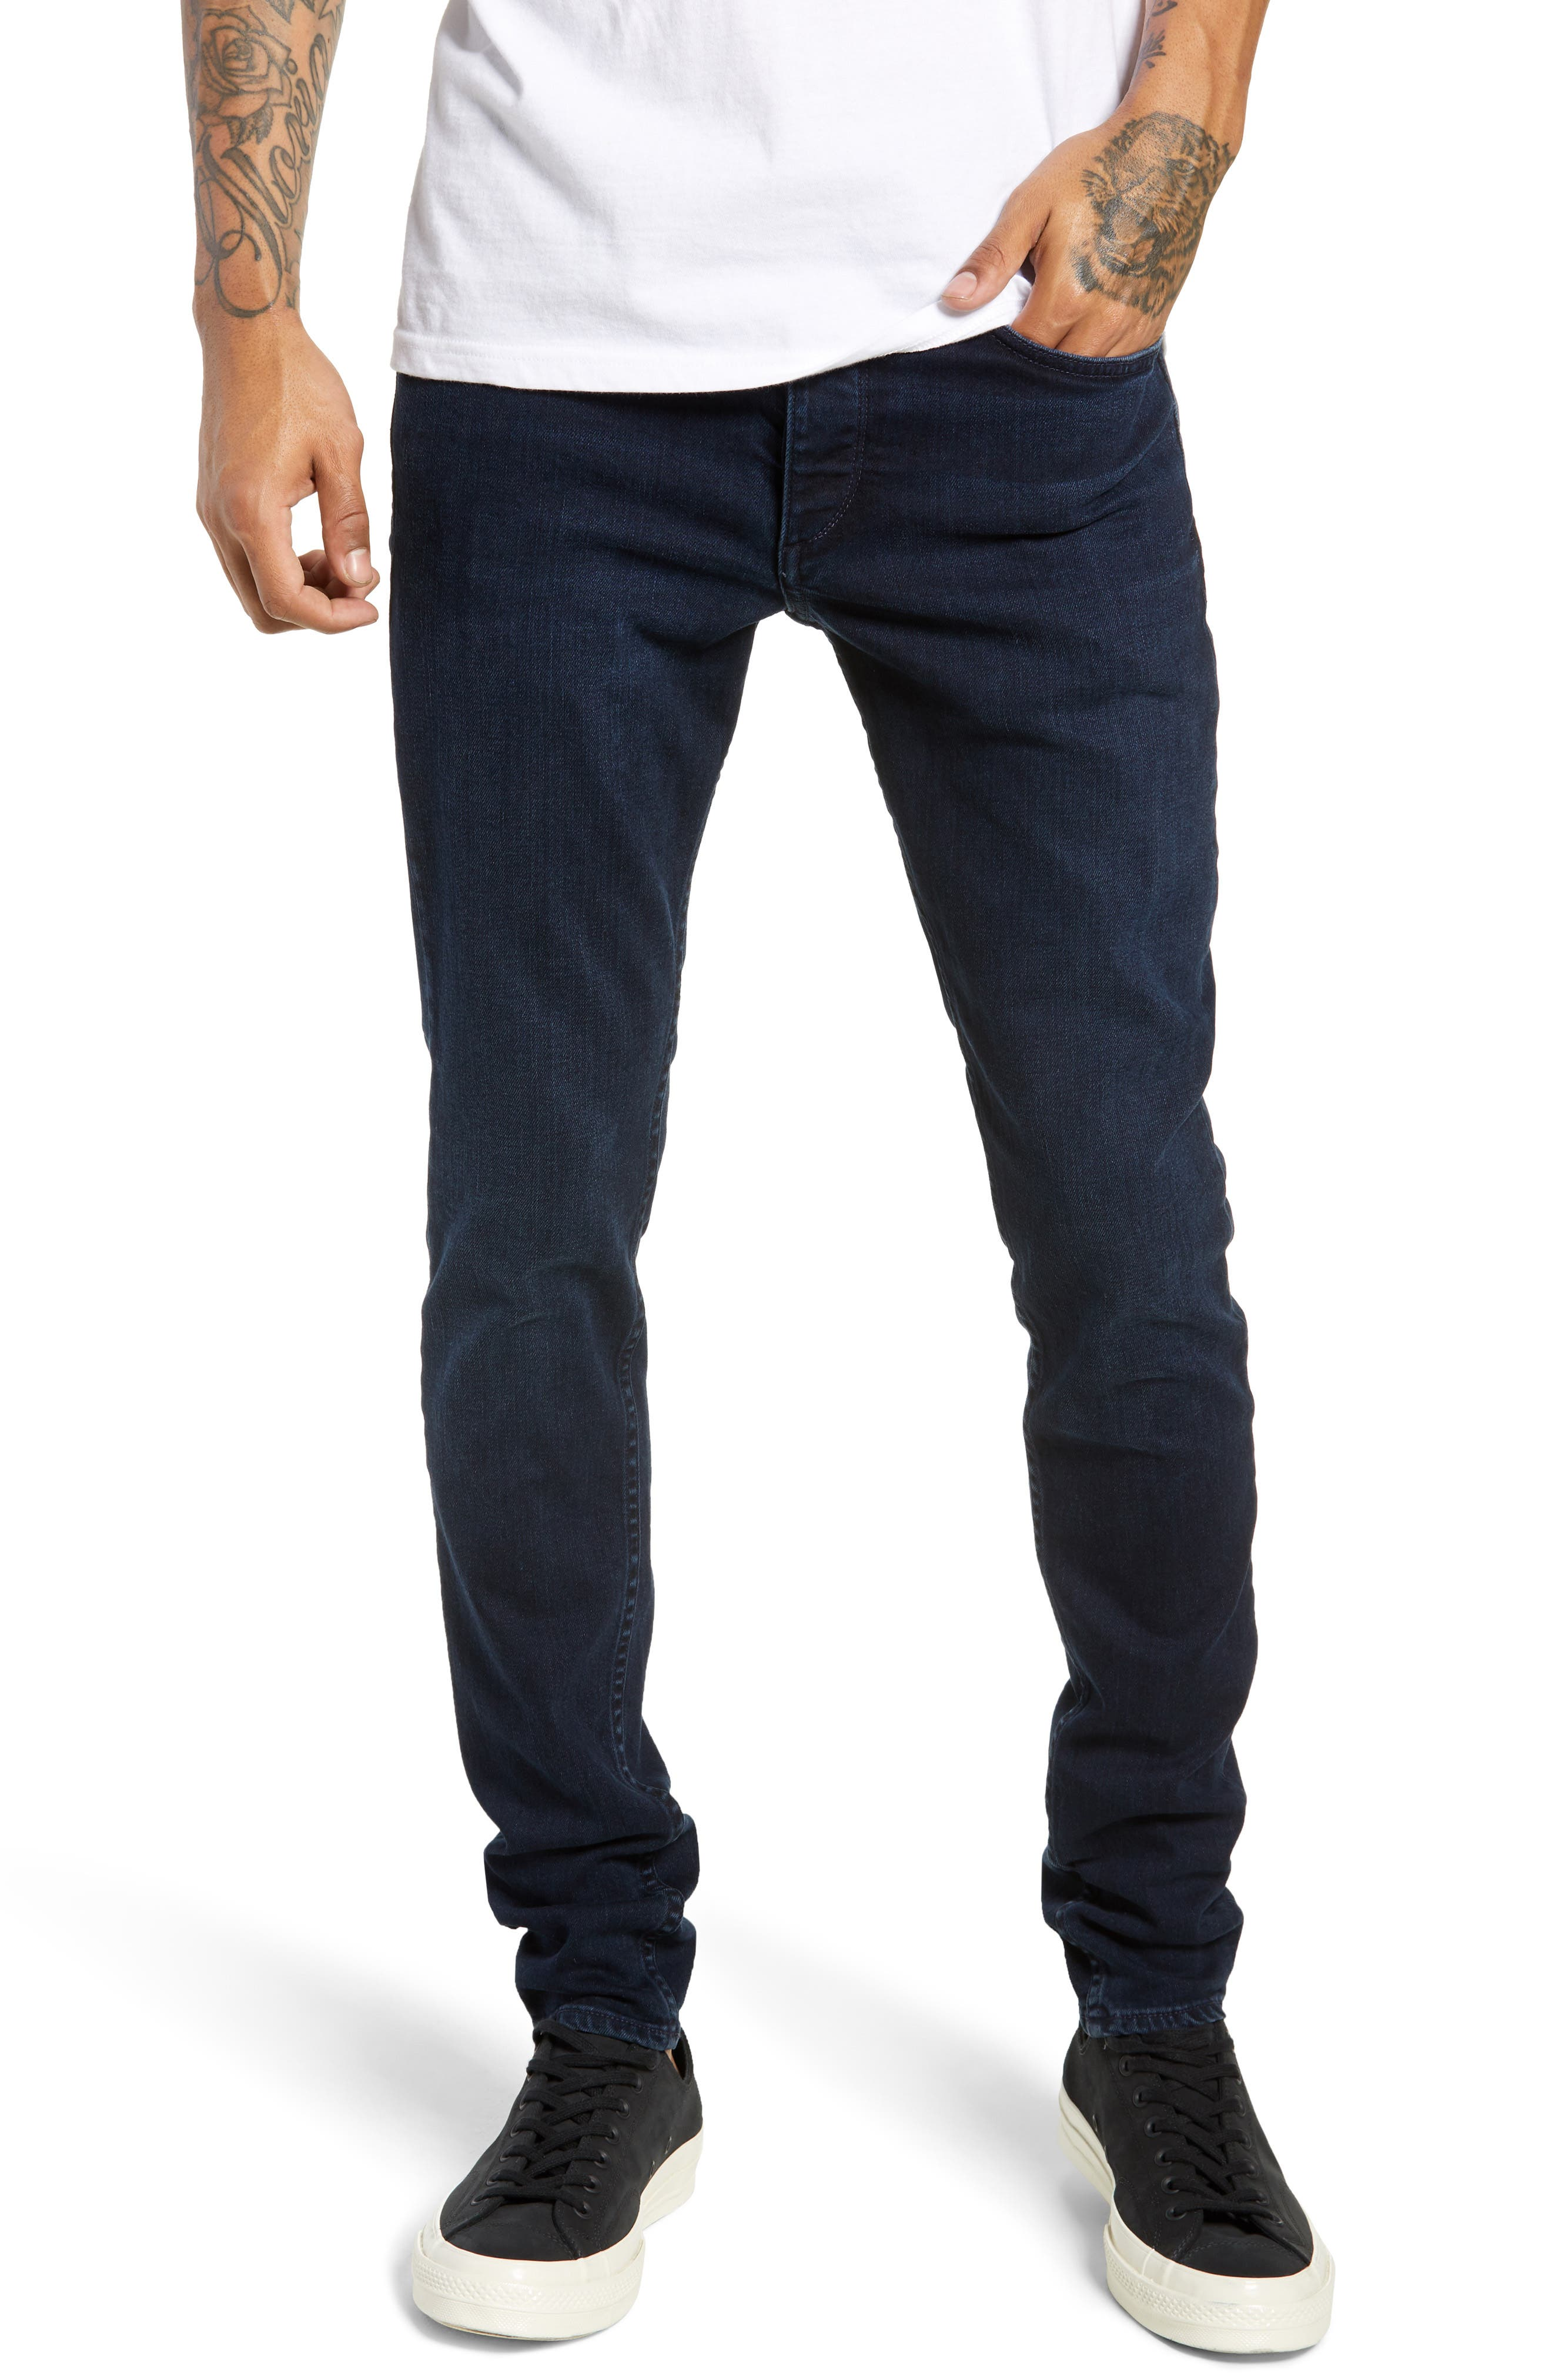 Fit 1 Skinny Fit Jeans,                         Main,                         color, 420